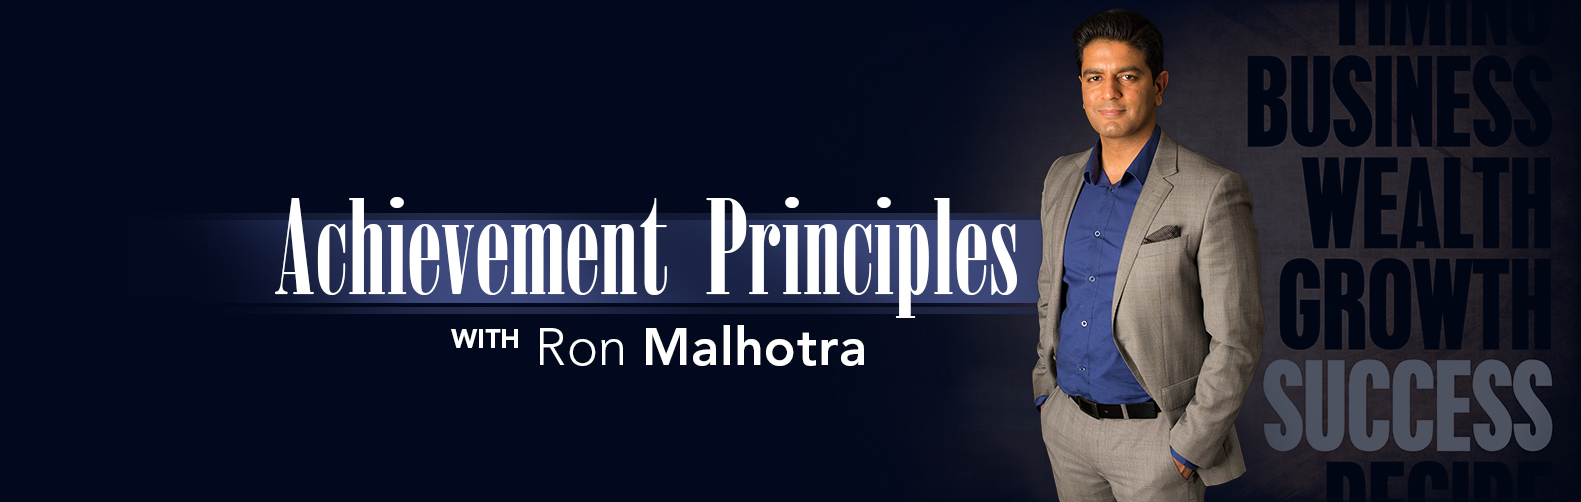 Ron_Malhotra-Cover-photo-V2